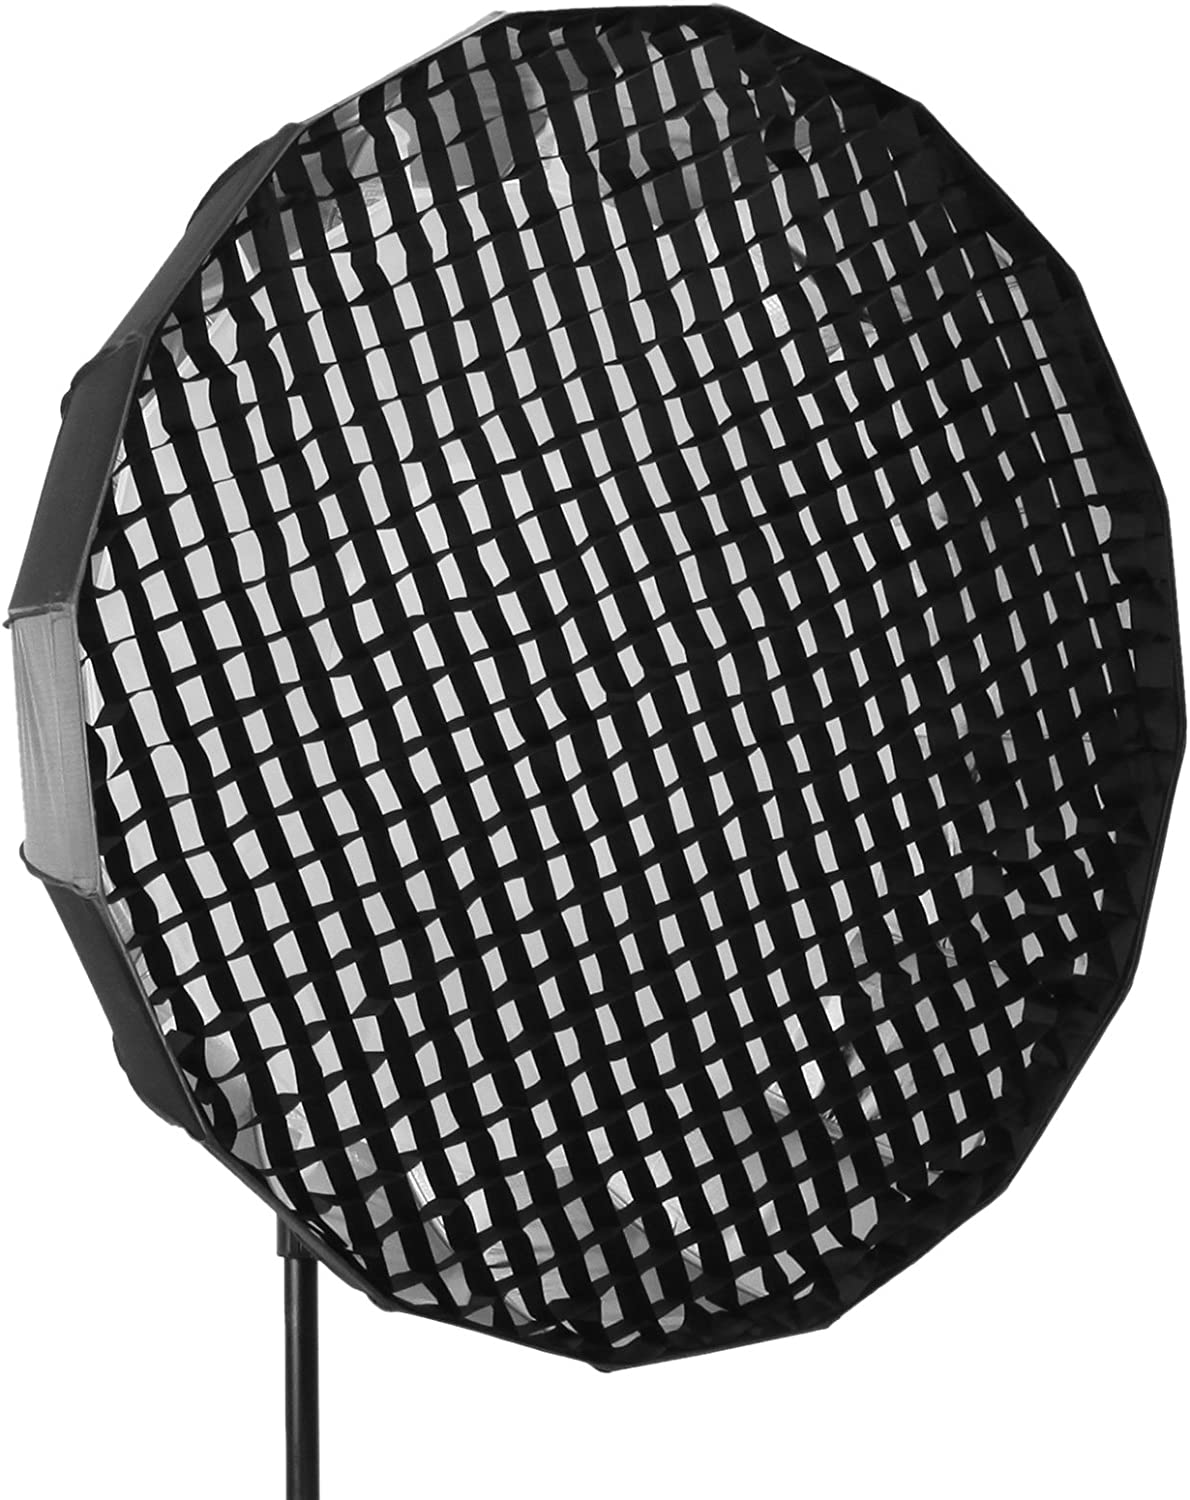 Selens Honeycomb Grid for Selens 42 inch//105 cm 16-Rib for Beauty Dish